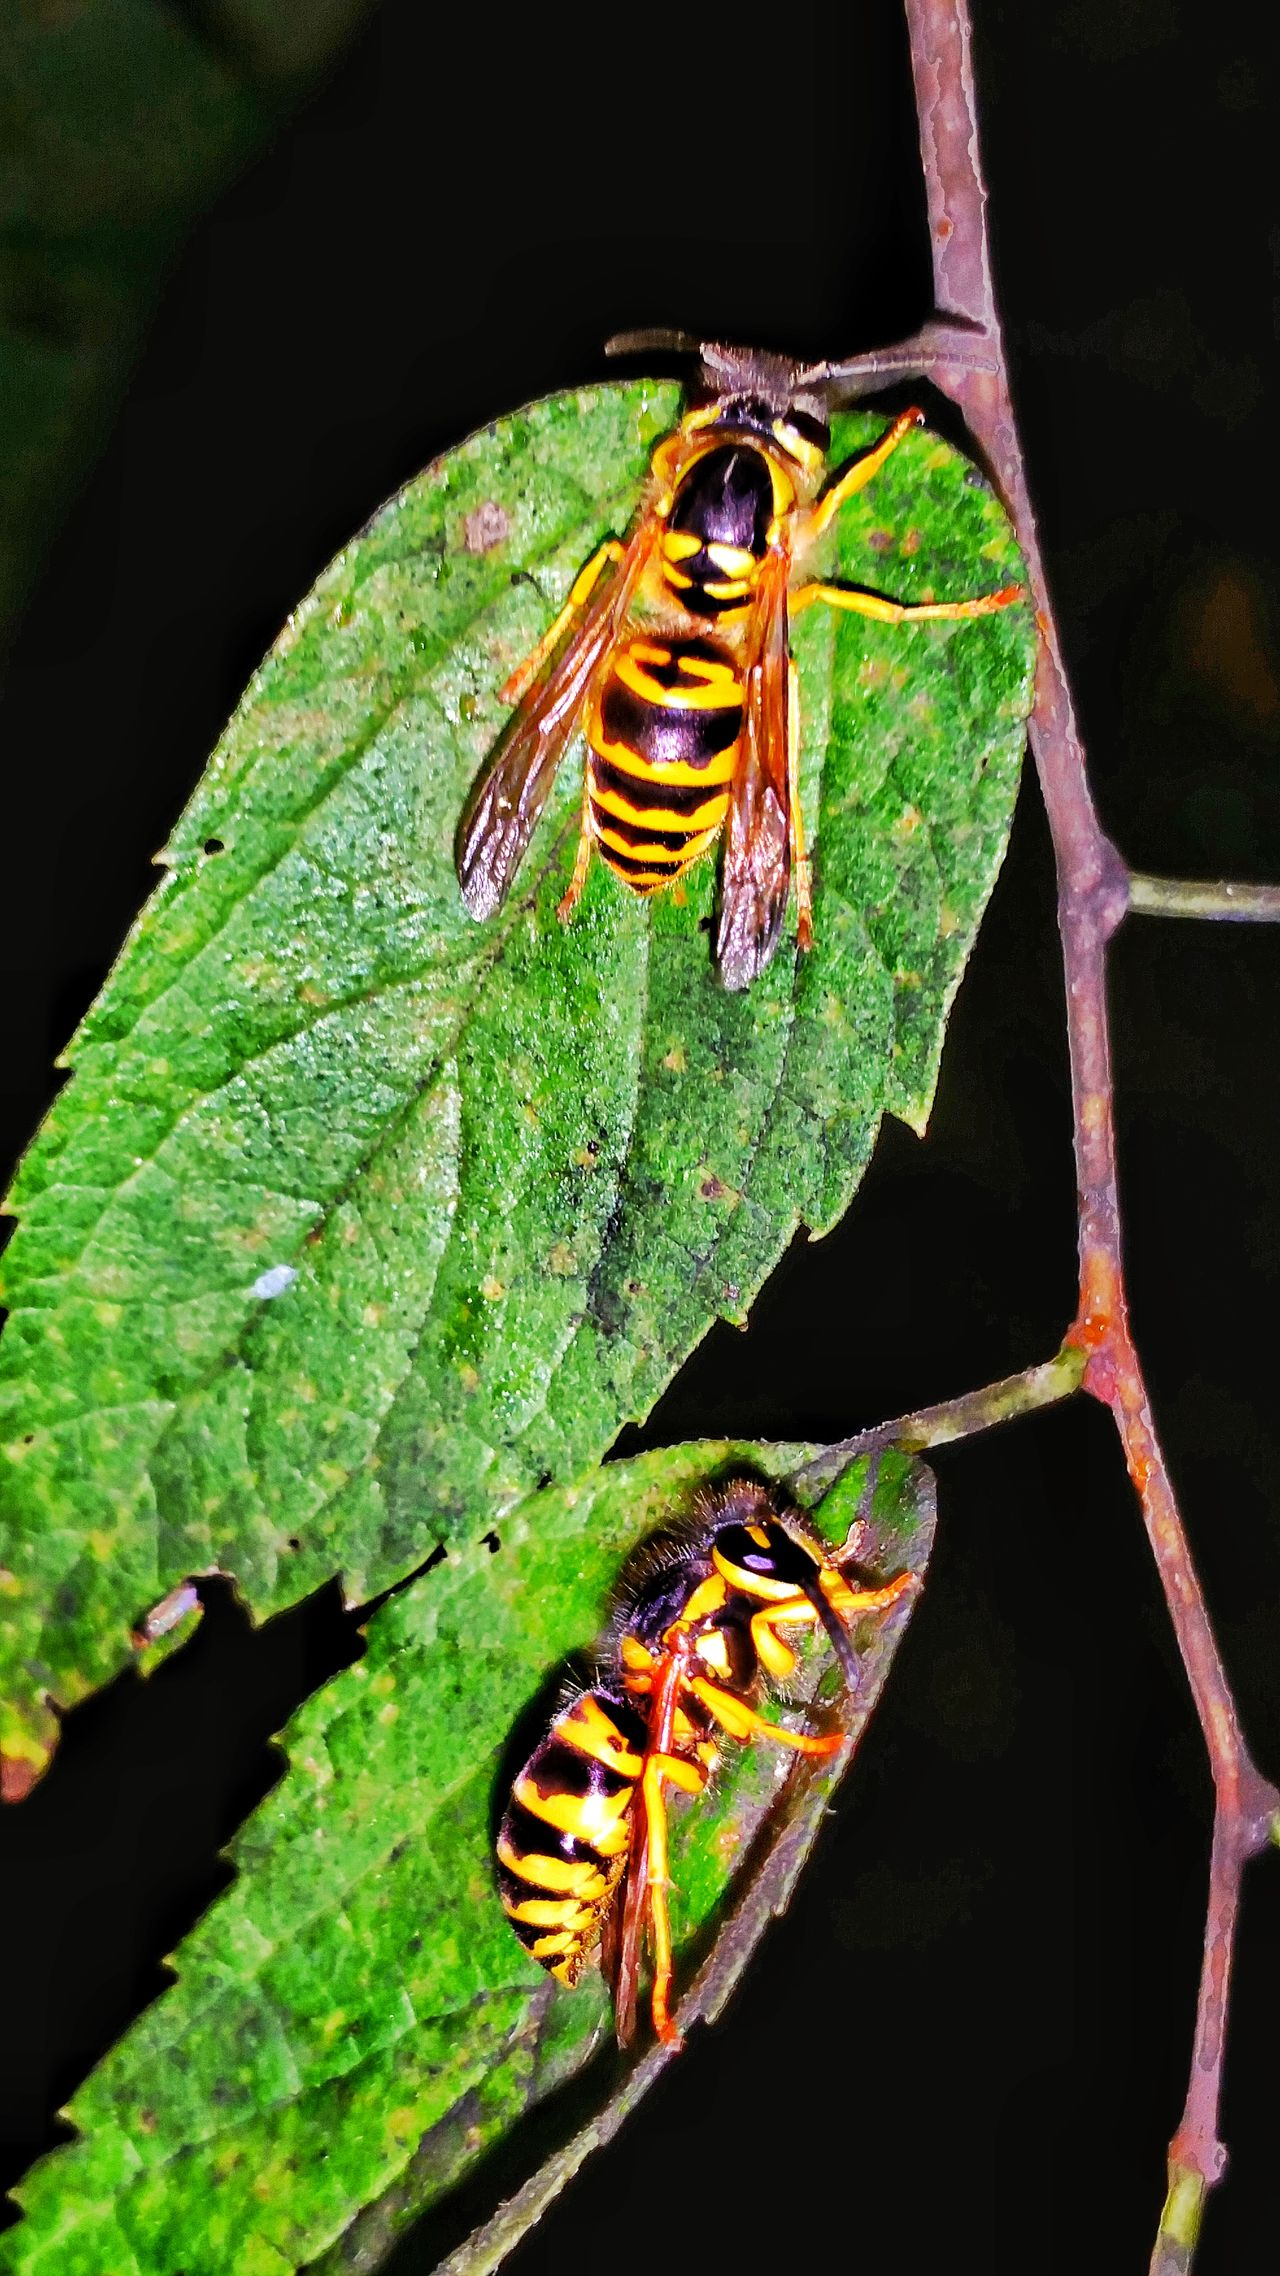 Yellow Jackets Wasp Vertical Night Nature Animal Wildlife Animals In The Wild Insect Bees Side View Angle Animal Themes Stinging Close-up Outdoors 2 Of A Kind Macro Photography Macro Leaf Insect Photography Pest Double Trouble Dangerous Animals Dangerous Stay Away